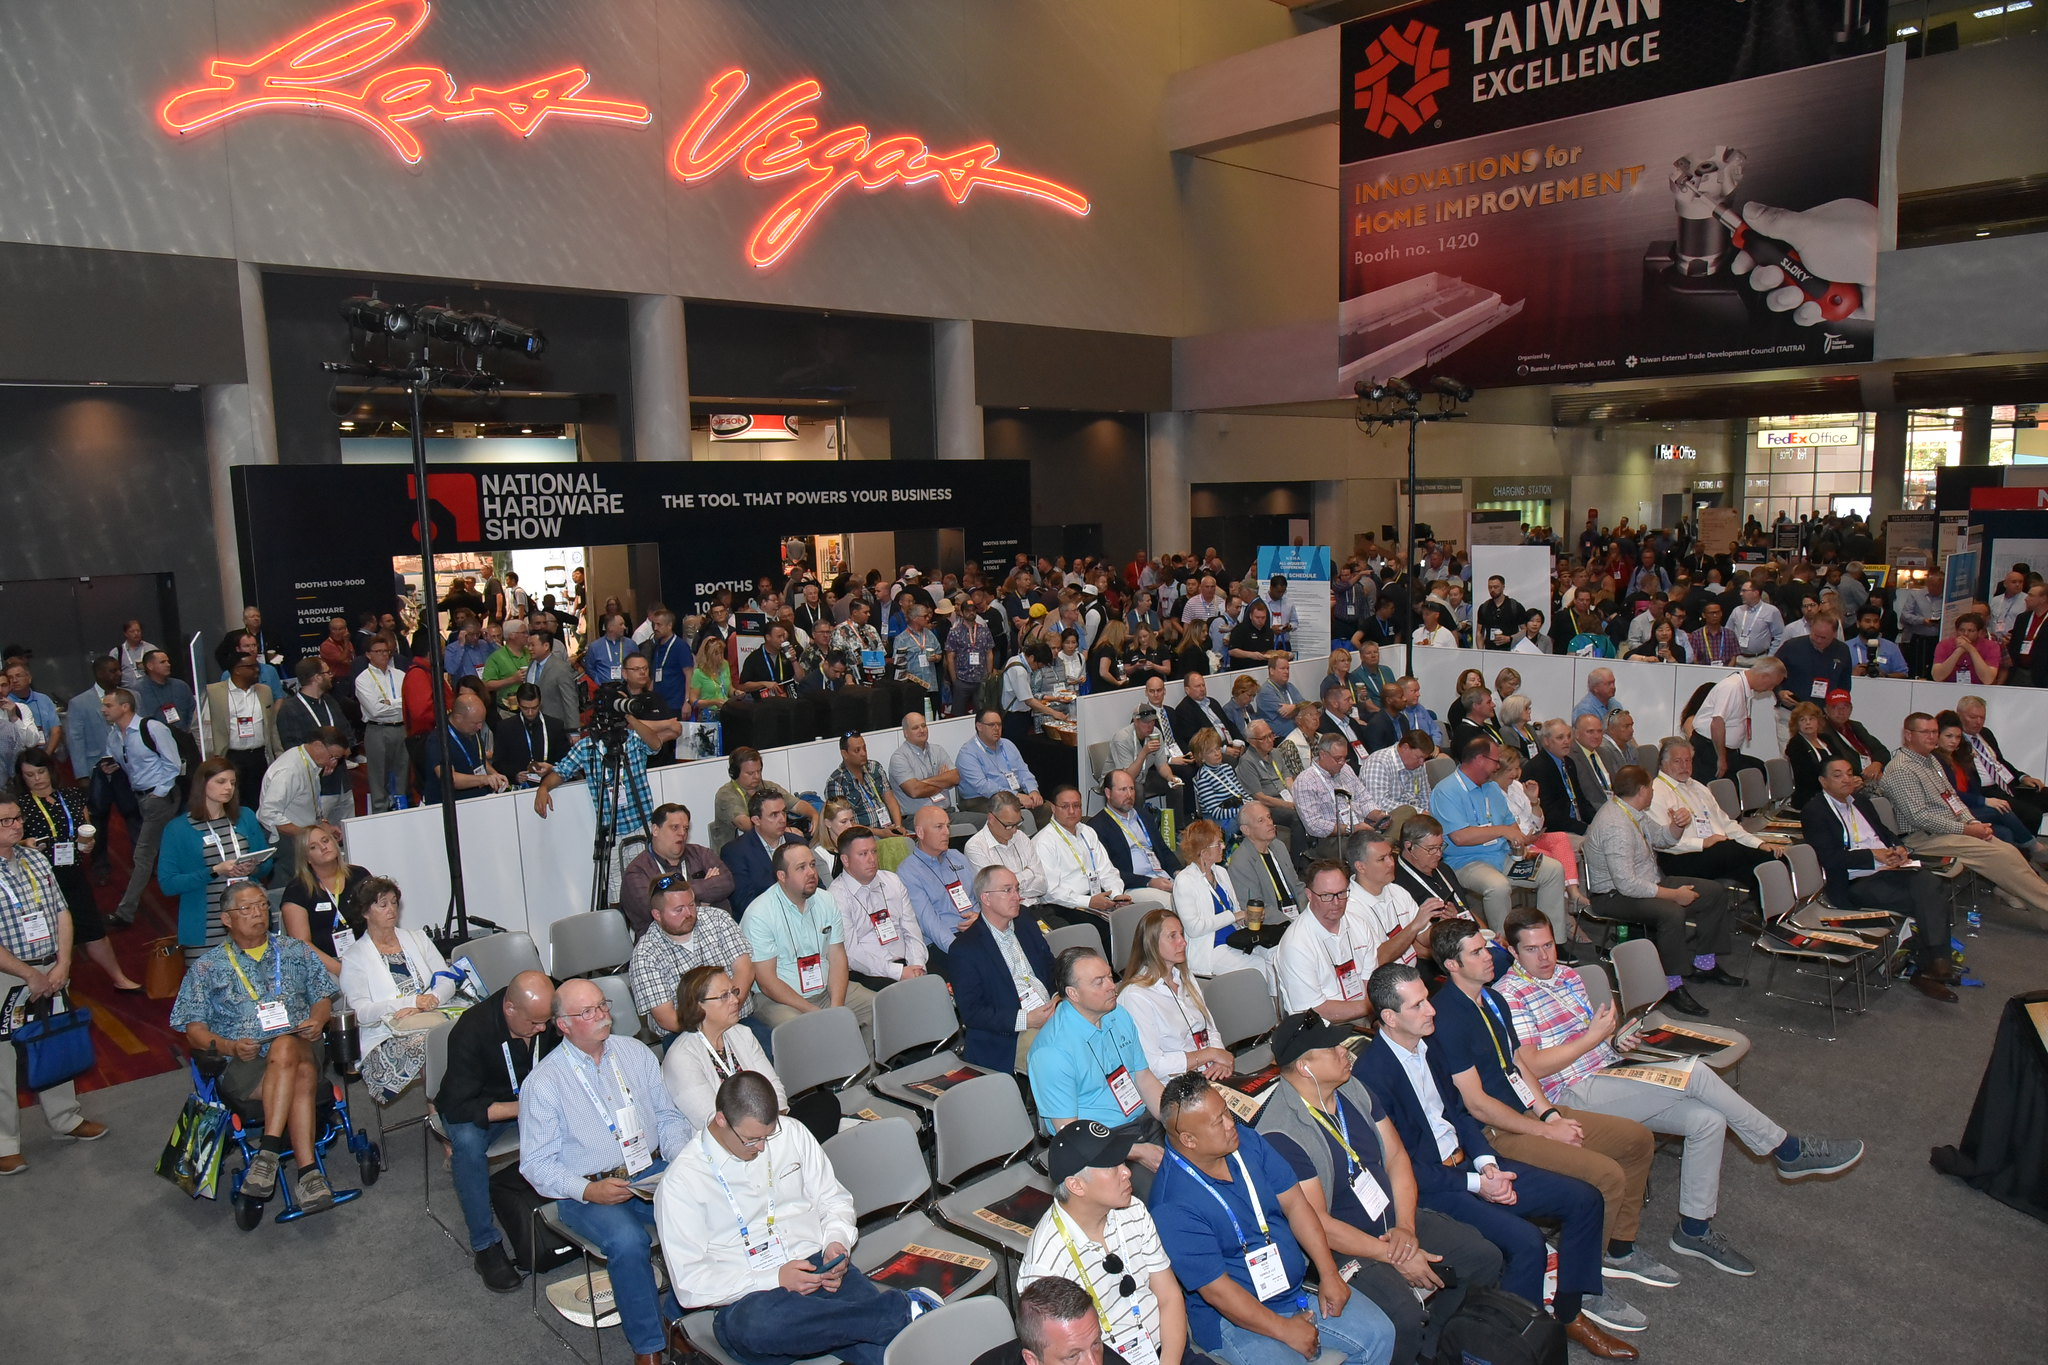 Participants at national hardware show 2019   national hardware show 2020 (nhs)